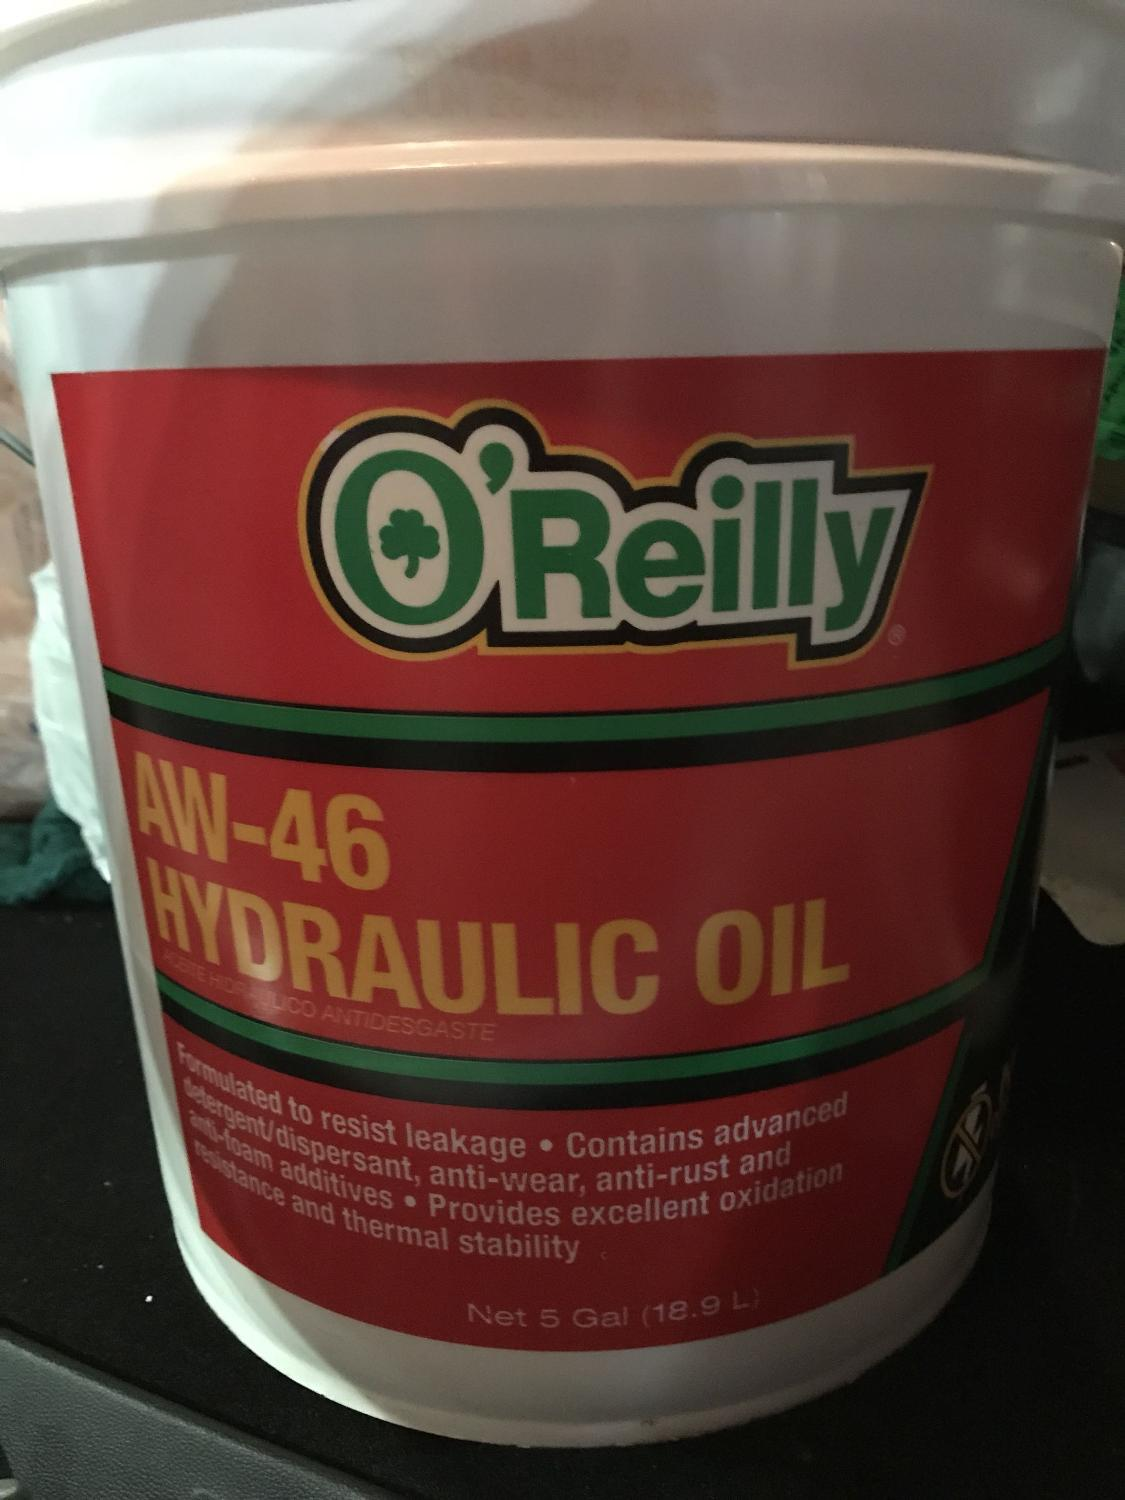 O'Reilly AW-46 Hydraulic oil ^^moving sale!!! 20